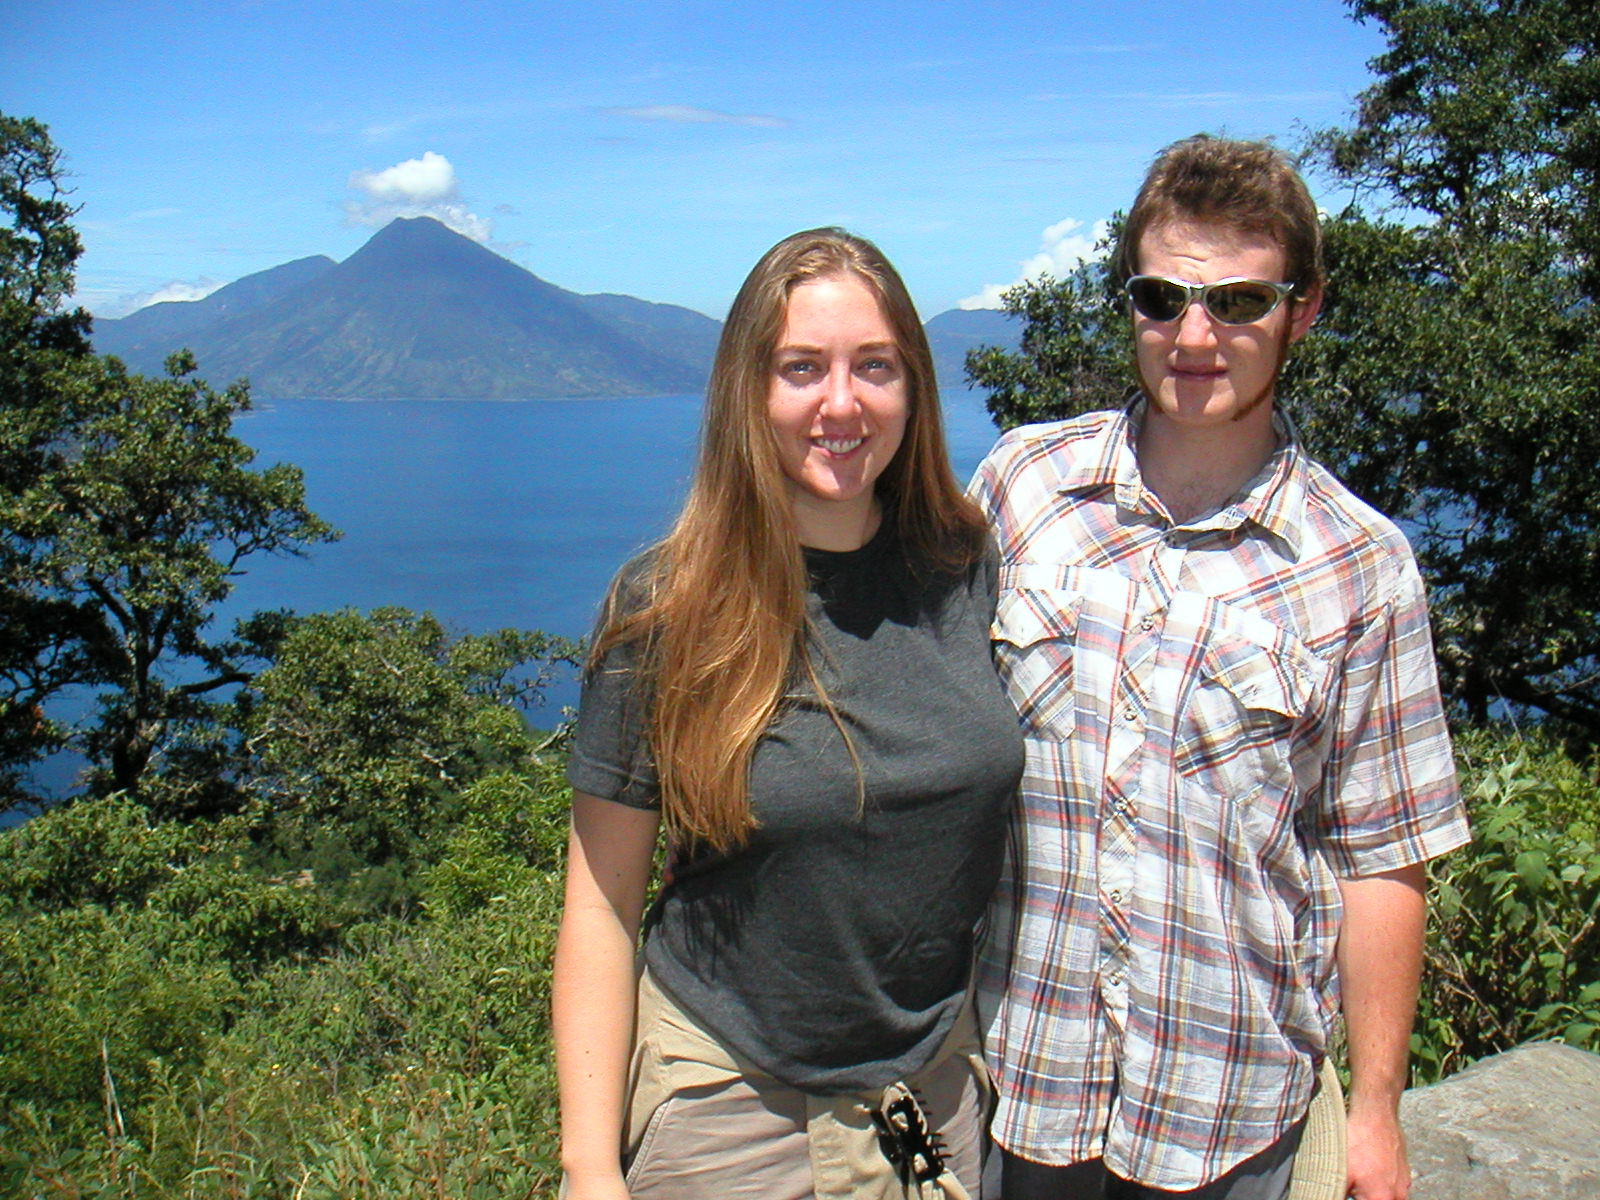 Shawn and Susie, Guatemala